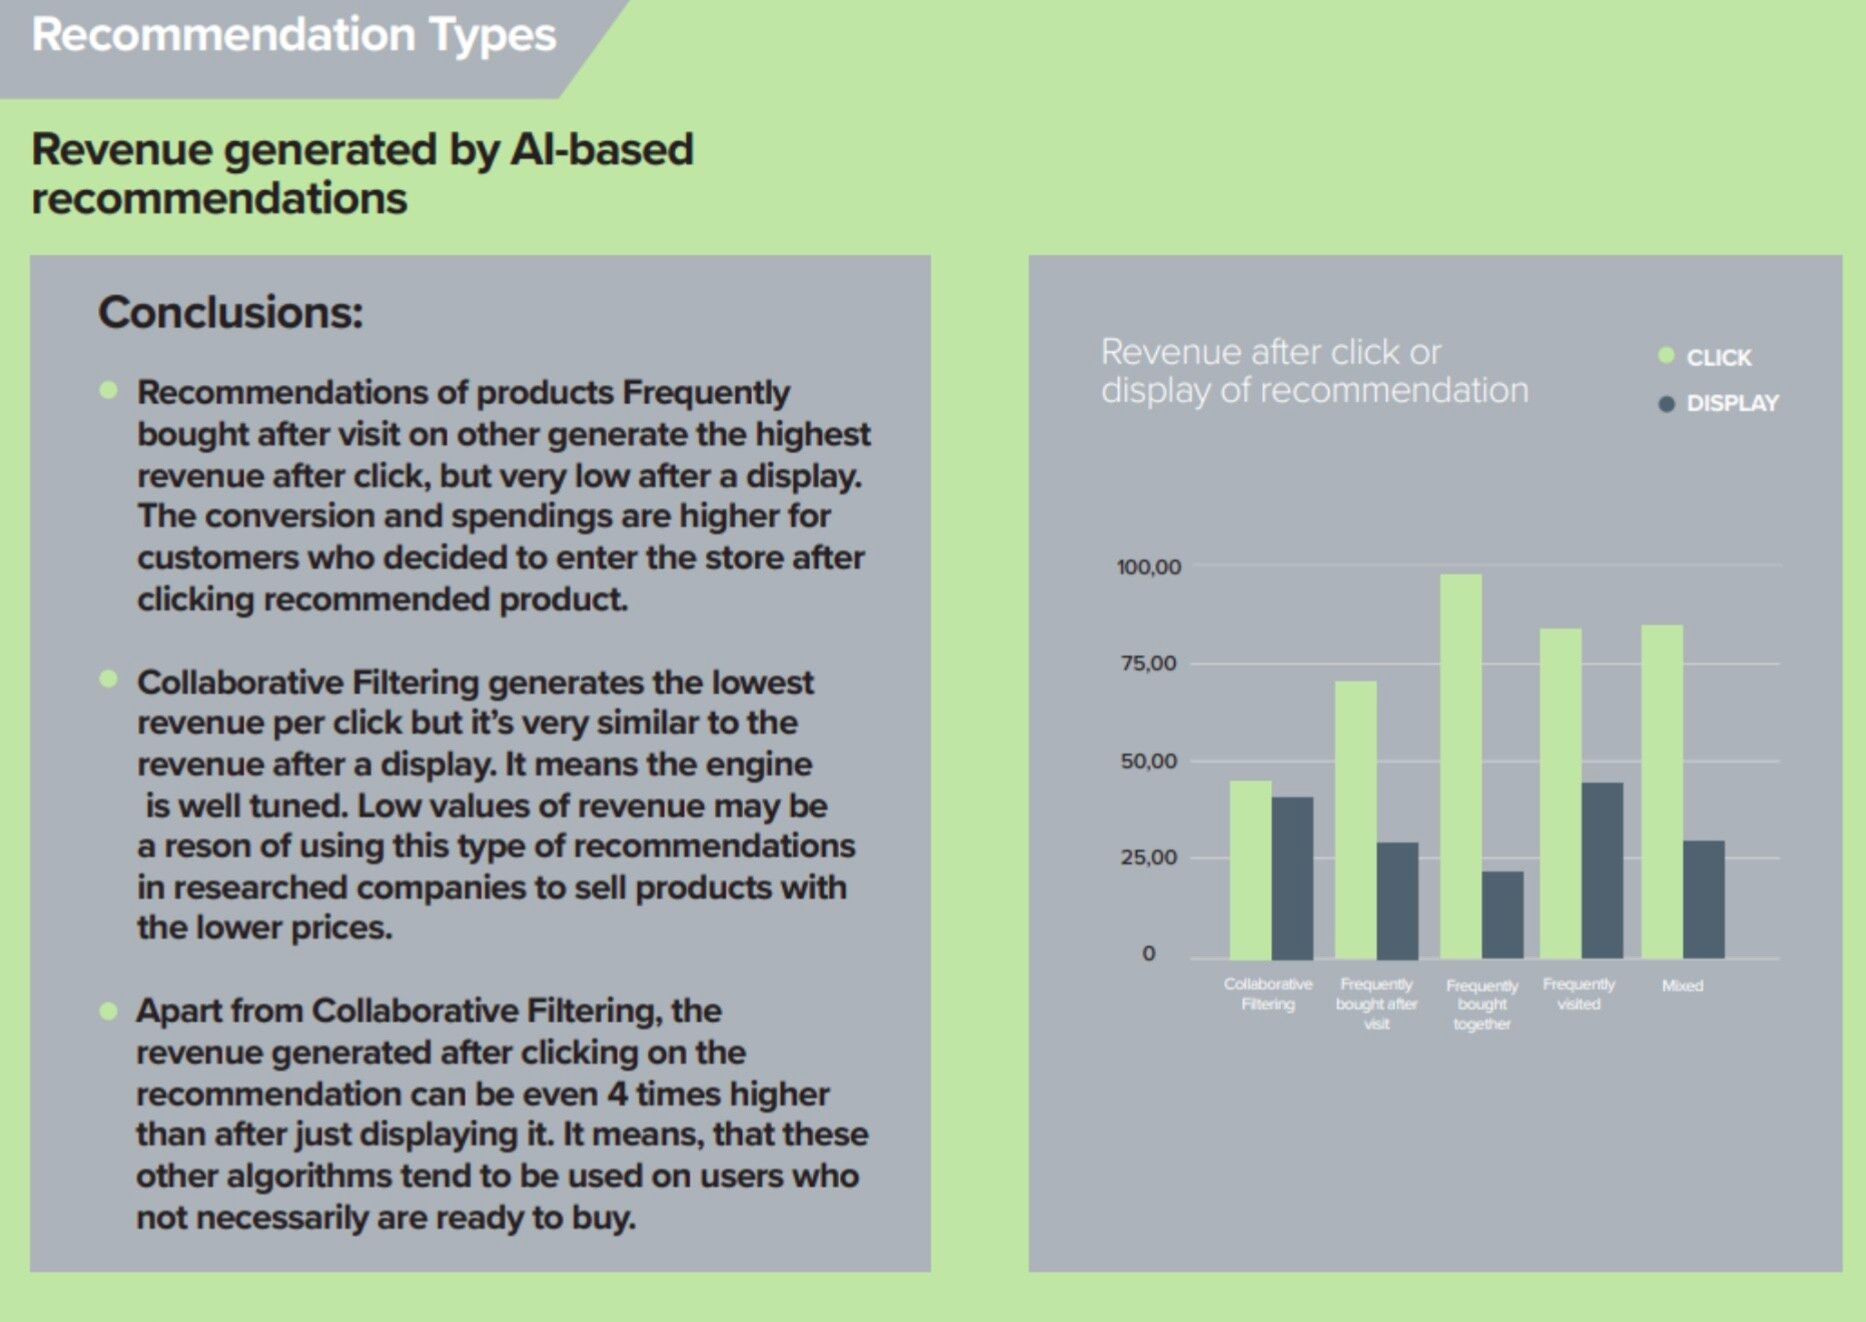 Conclusions on revenue generated by AI-based recommendations.